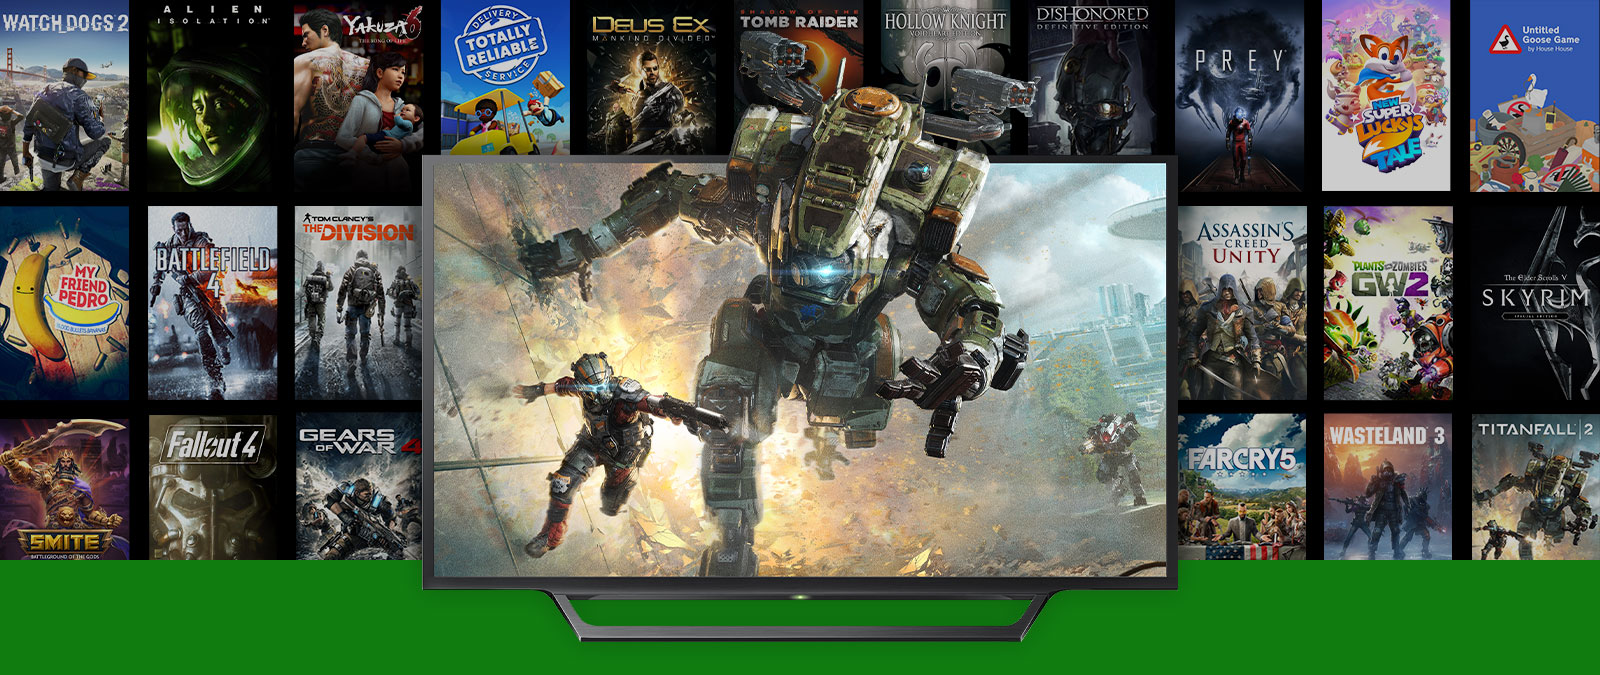 Titanfall 2 characters leap out of a TV with multiple boxshots of backward compatible games FPS boosted games in the background